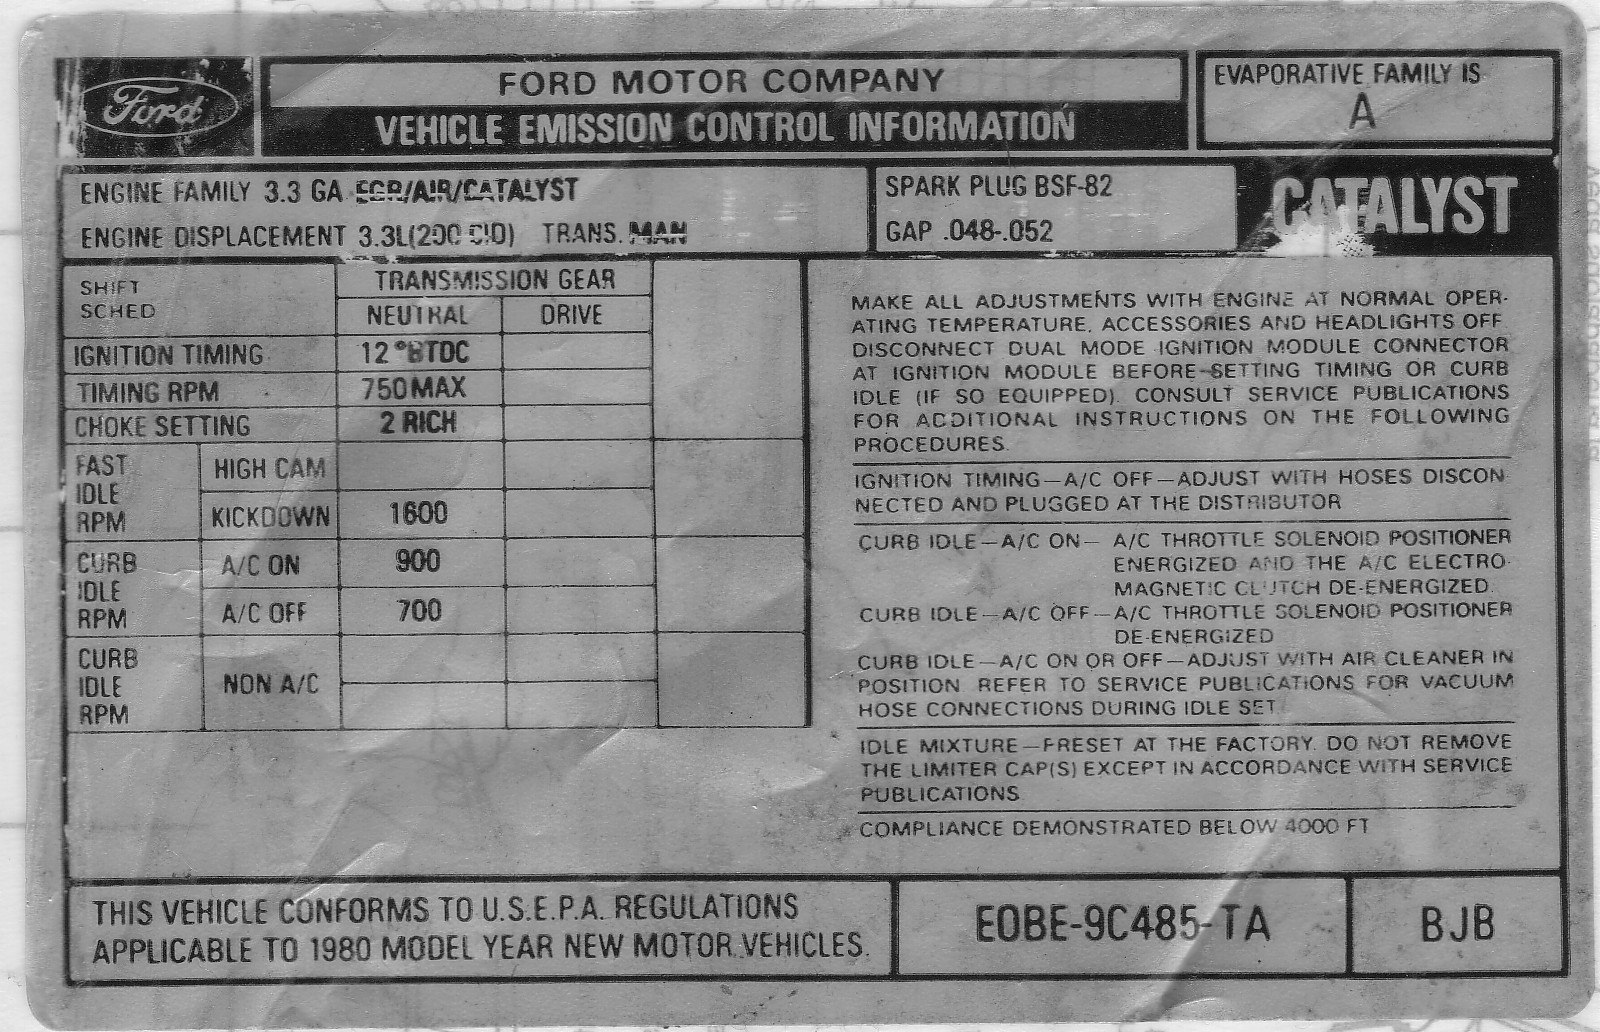 1981 Ford Granada Gl 33l I6 Help 1986 F 350 Vacuum Line Diagram Trucks And Rvs Use Different Names The Base Evolved From 1979 To 1988 In Fact Even Veci Diagrams Werent